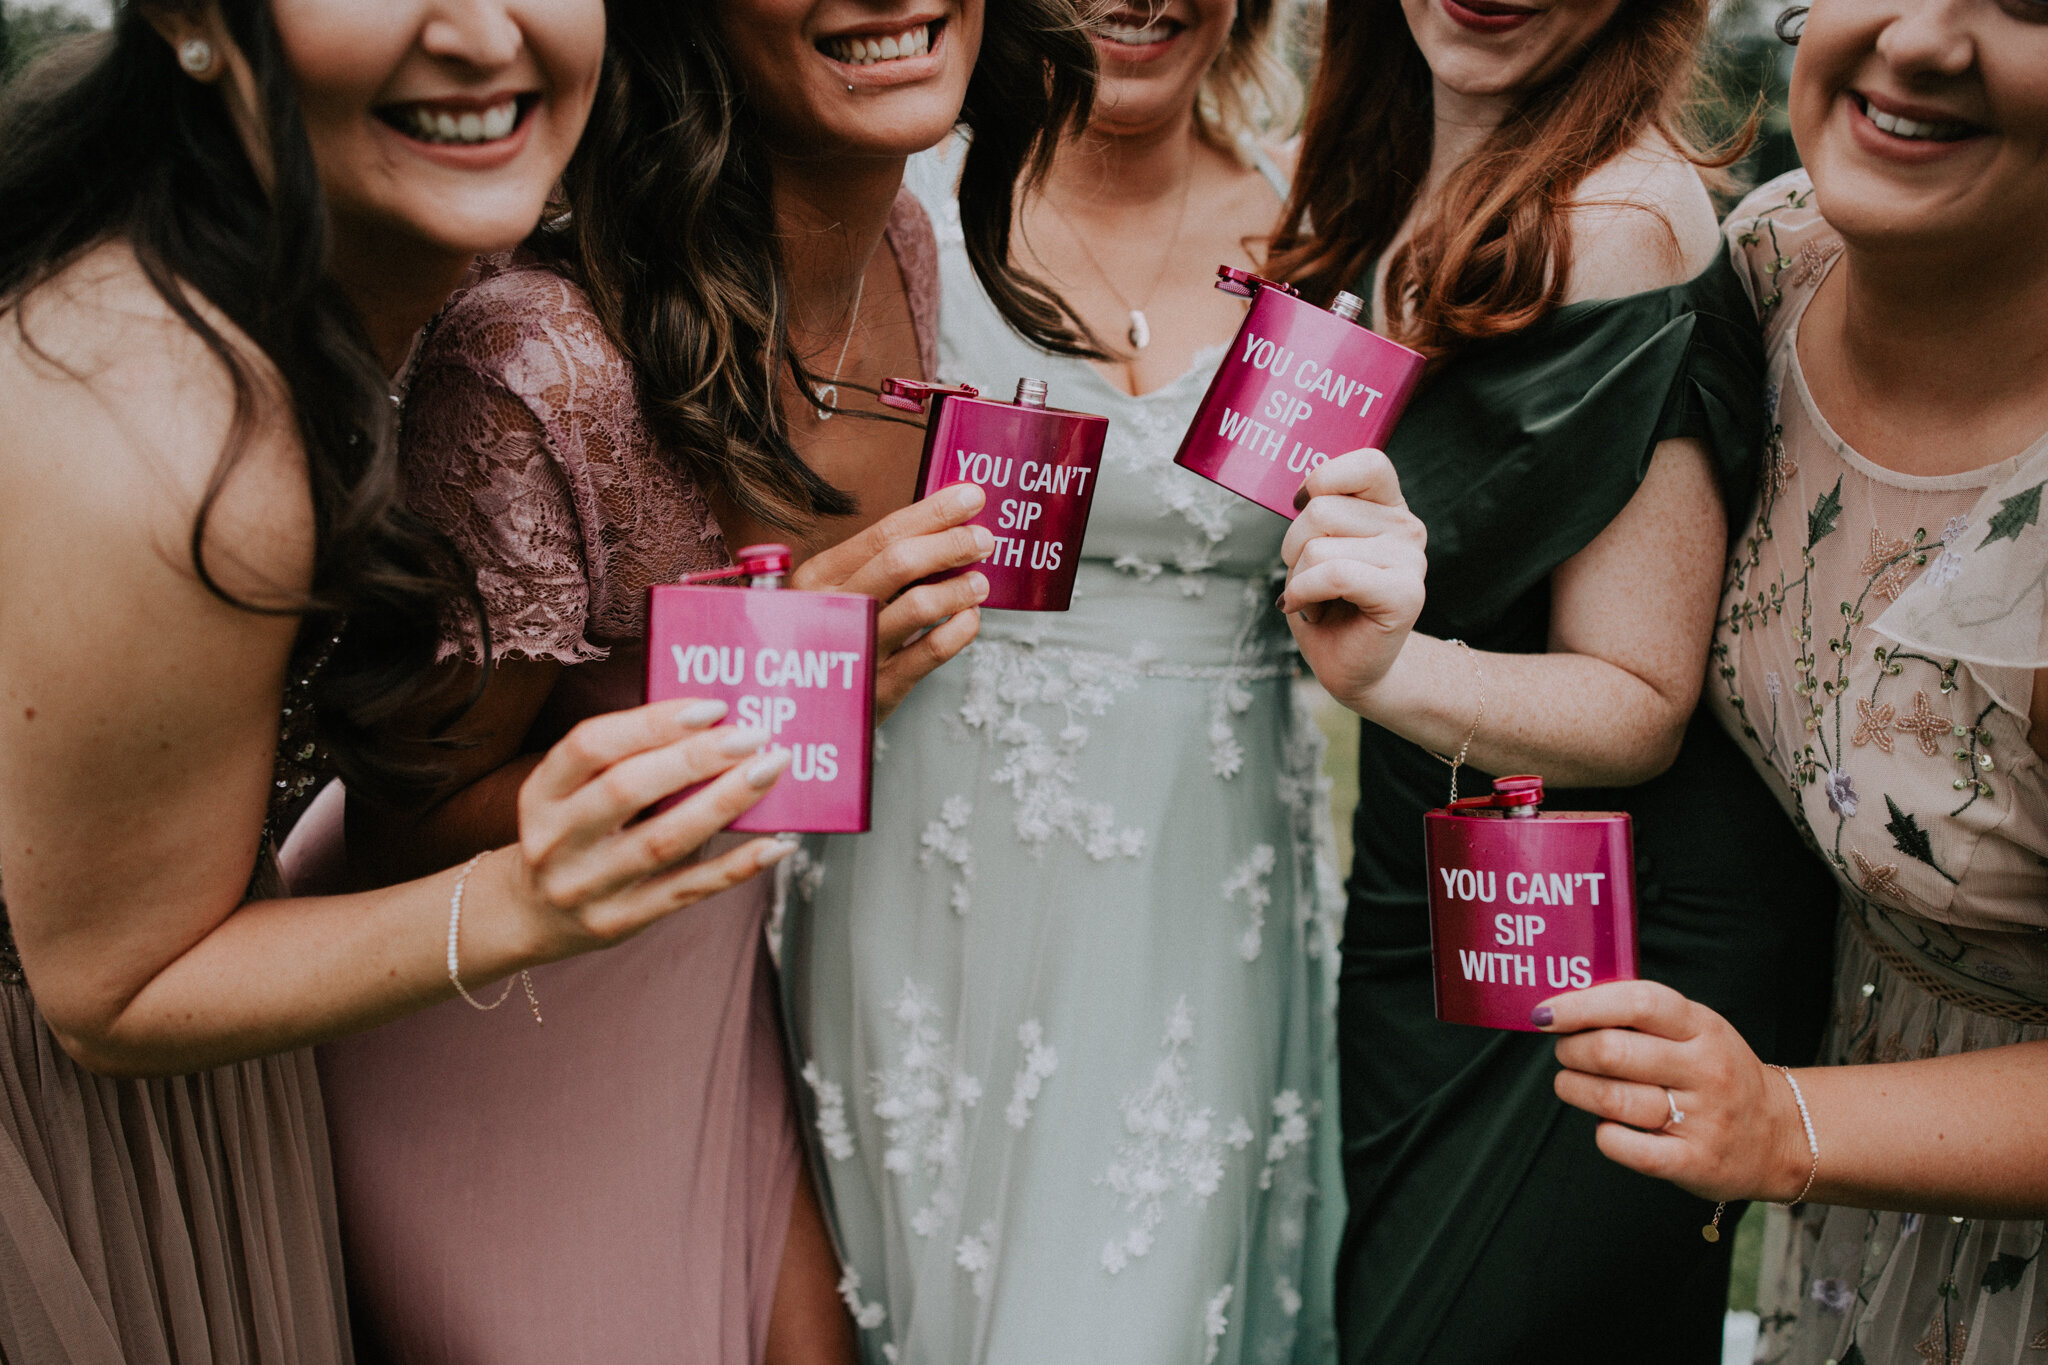 You can't sip with us. Alternative bridesmaids presents from the bride.